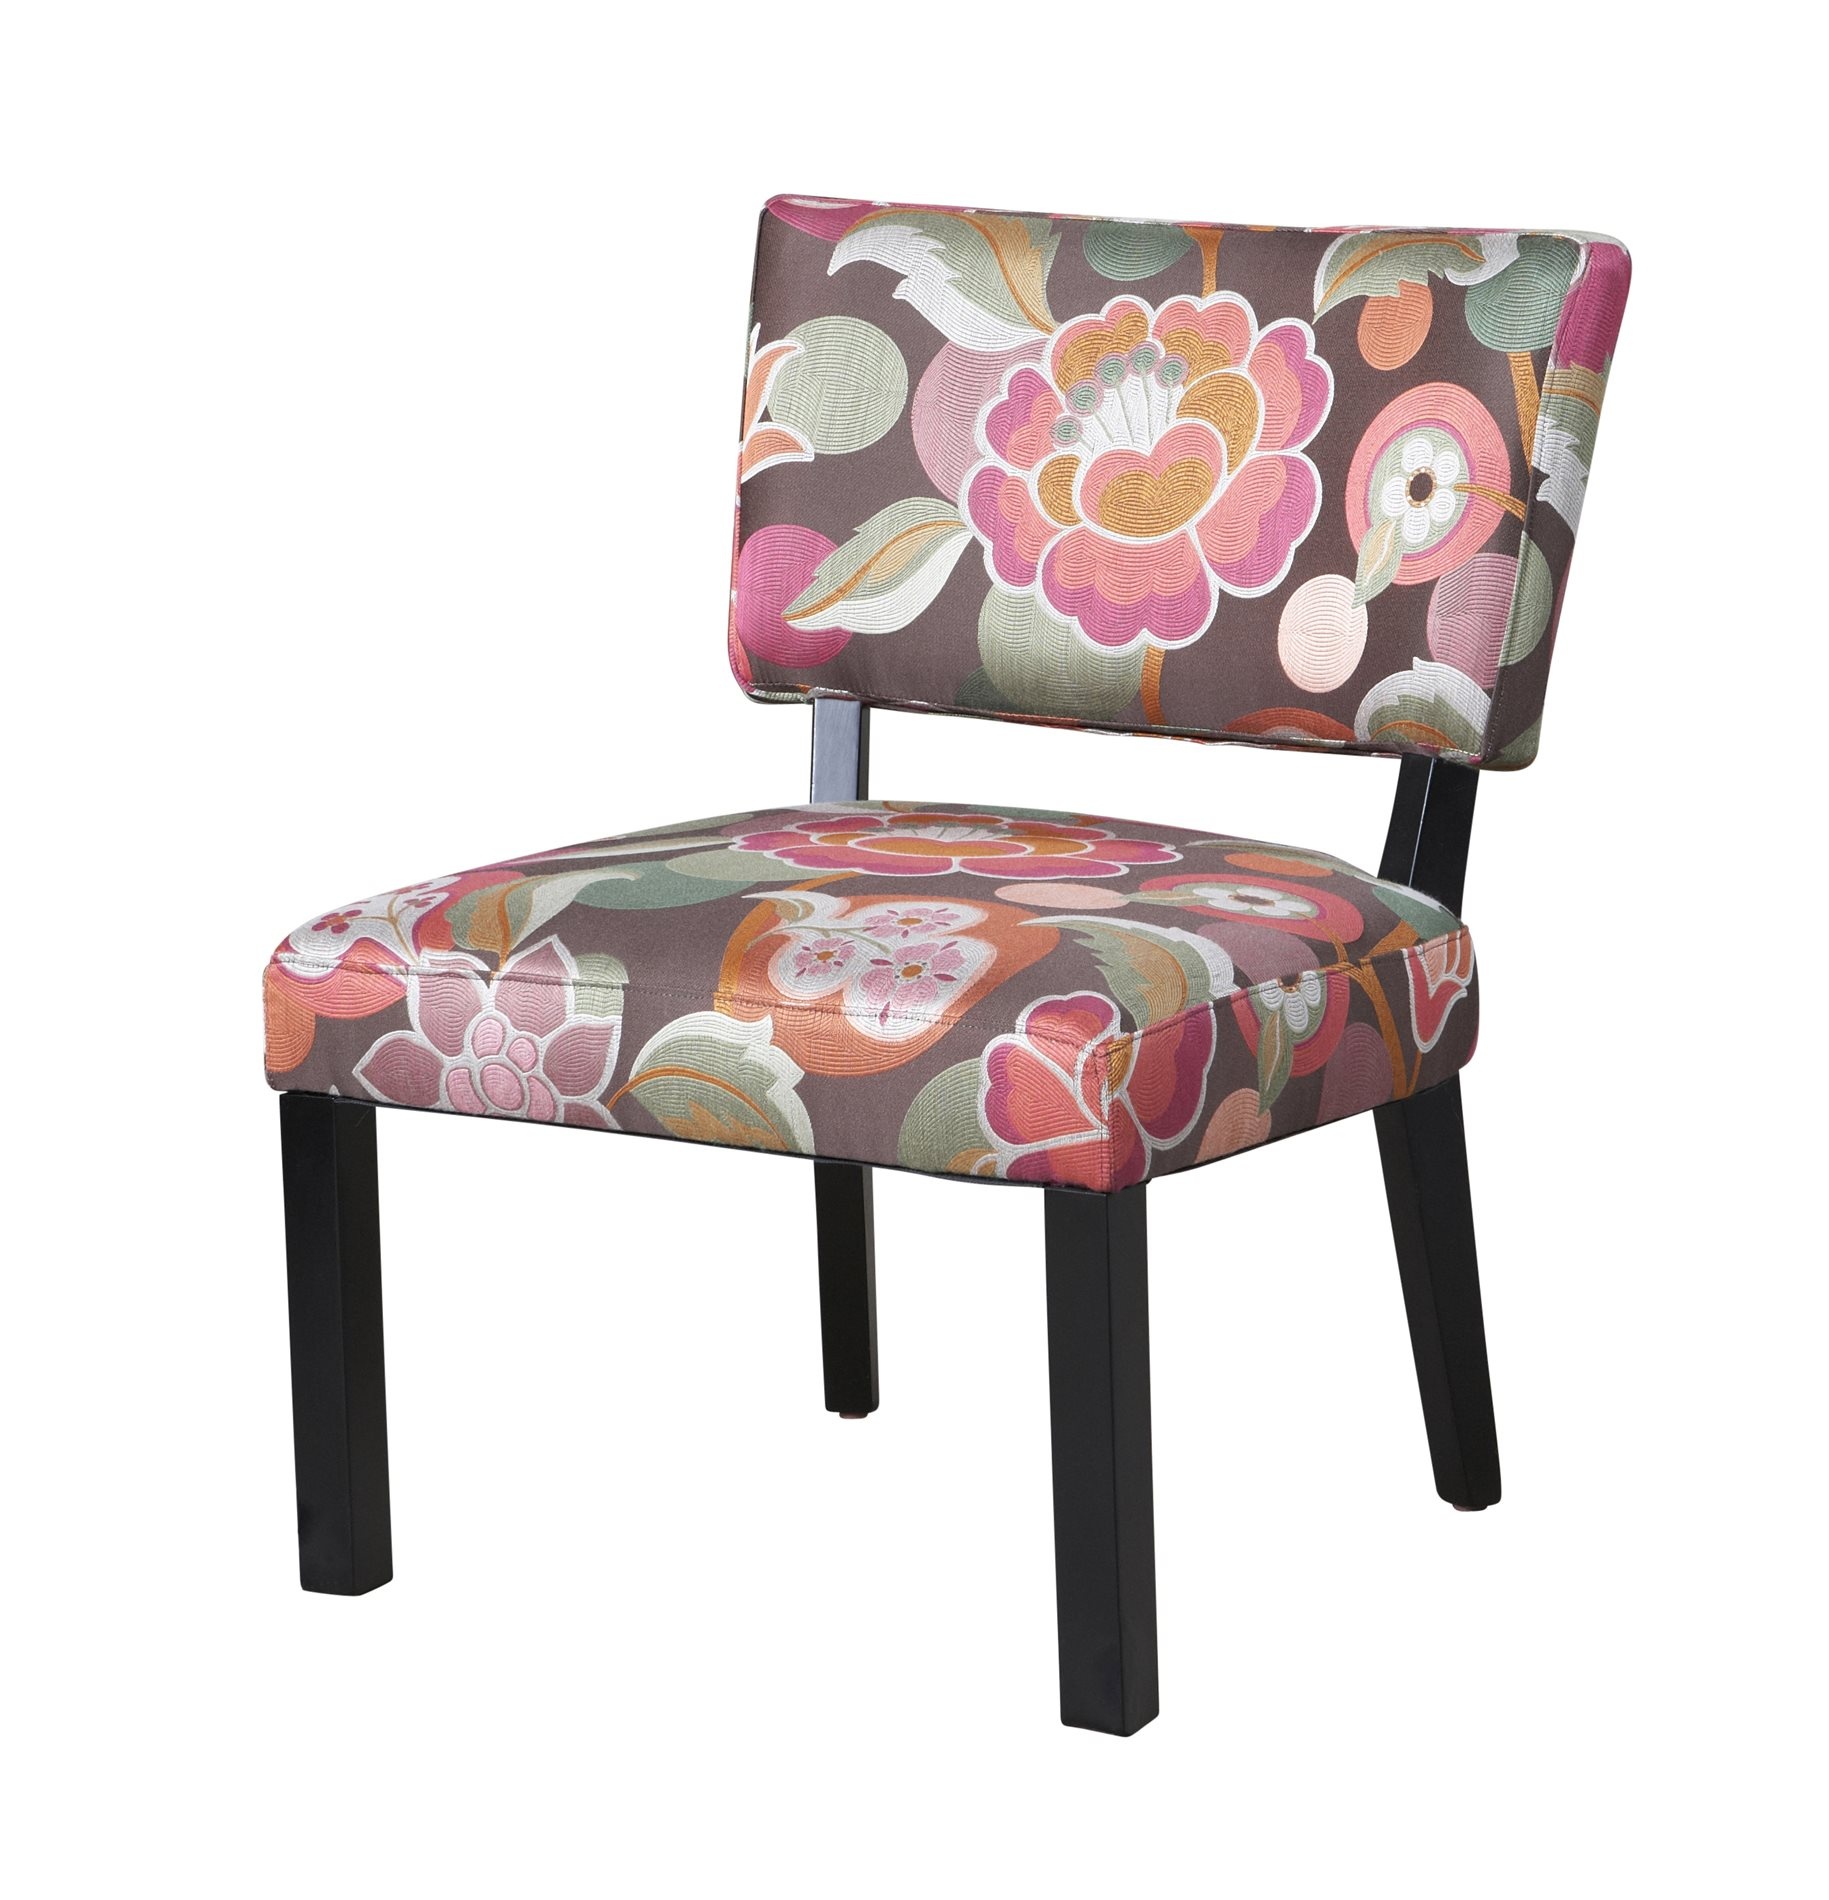 Floral Chair Powell 383 560 Pink And Brown Floral Accent Chair Pwl 383 560